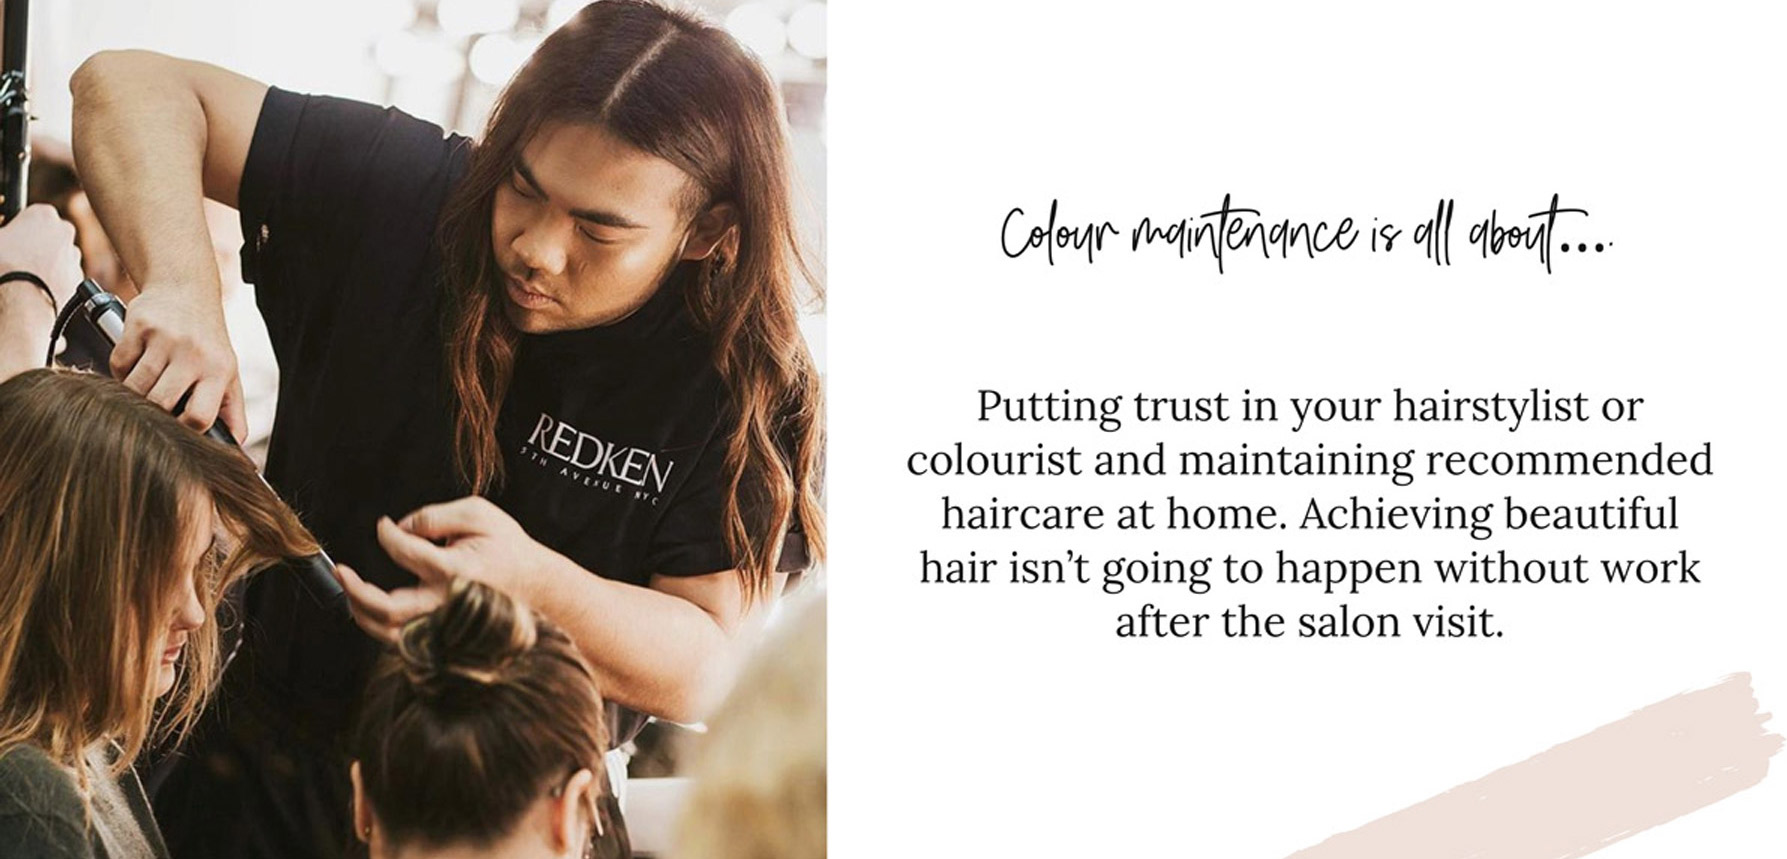 Secrets of a Stylist: How To Maintain Your Colour